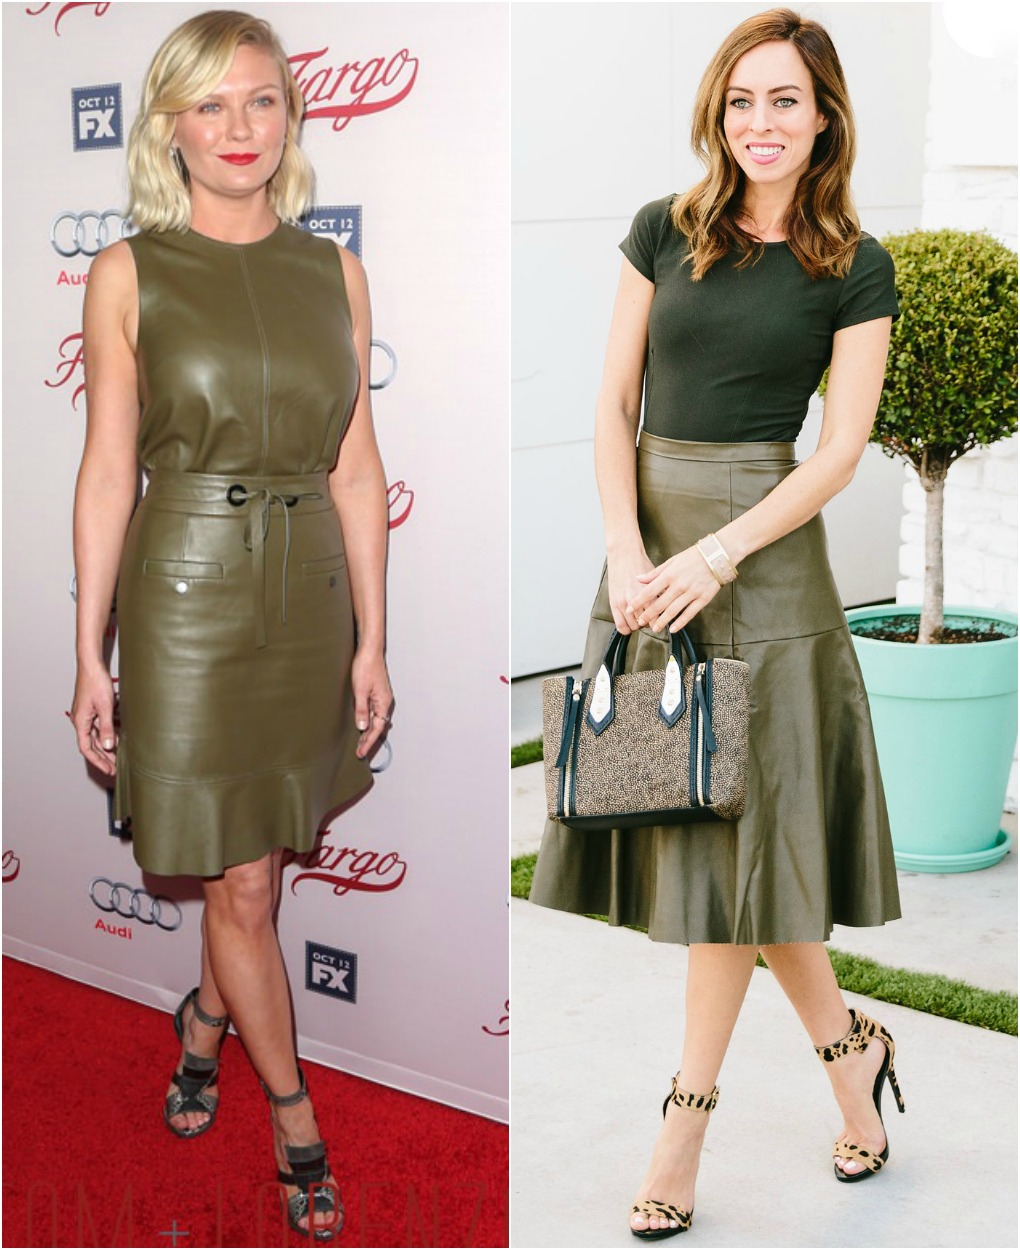 Sydne Style - Los Angeles Fashion Blogger and People StyleWatch contributor Sydne Summer shows how to style Kirsten Dunst's Olive Leather Skirt from the Fargo premiere in celebrity fashion.